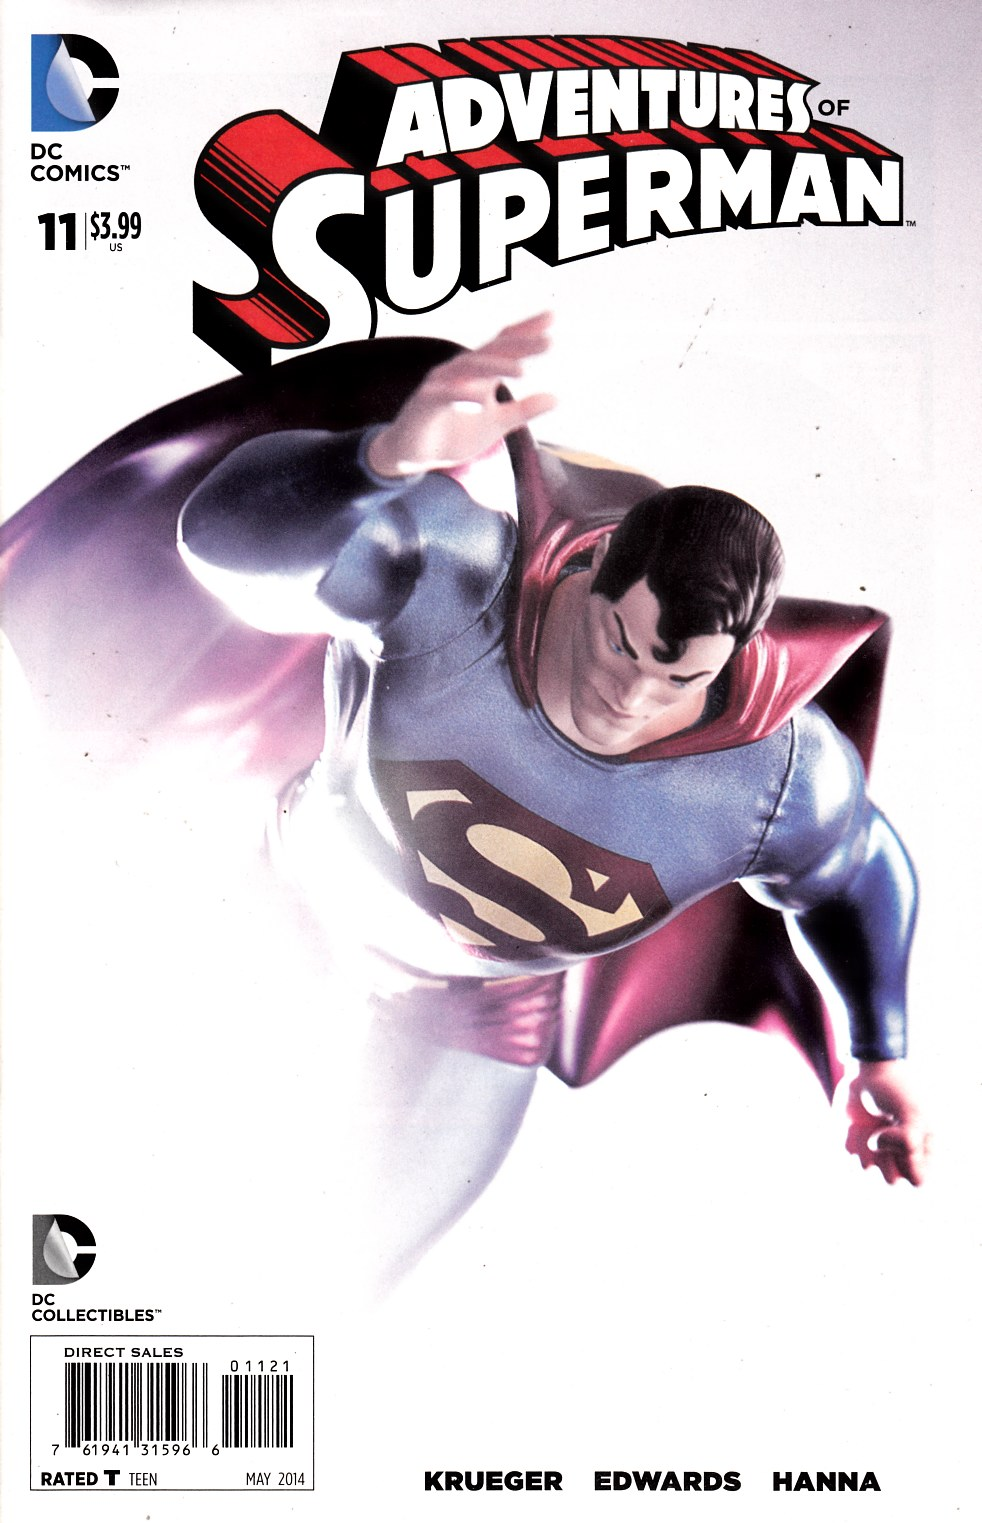 Adventures of Superman #11 Photo Variant Cover Near Mint (9.4) [DC Comic] THUMBNAIL